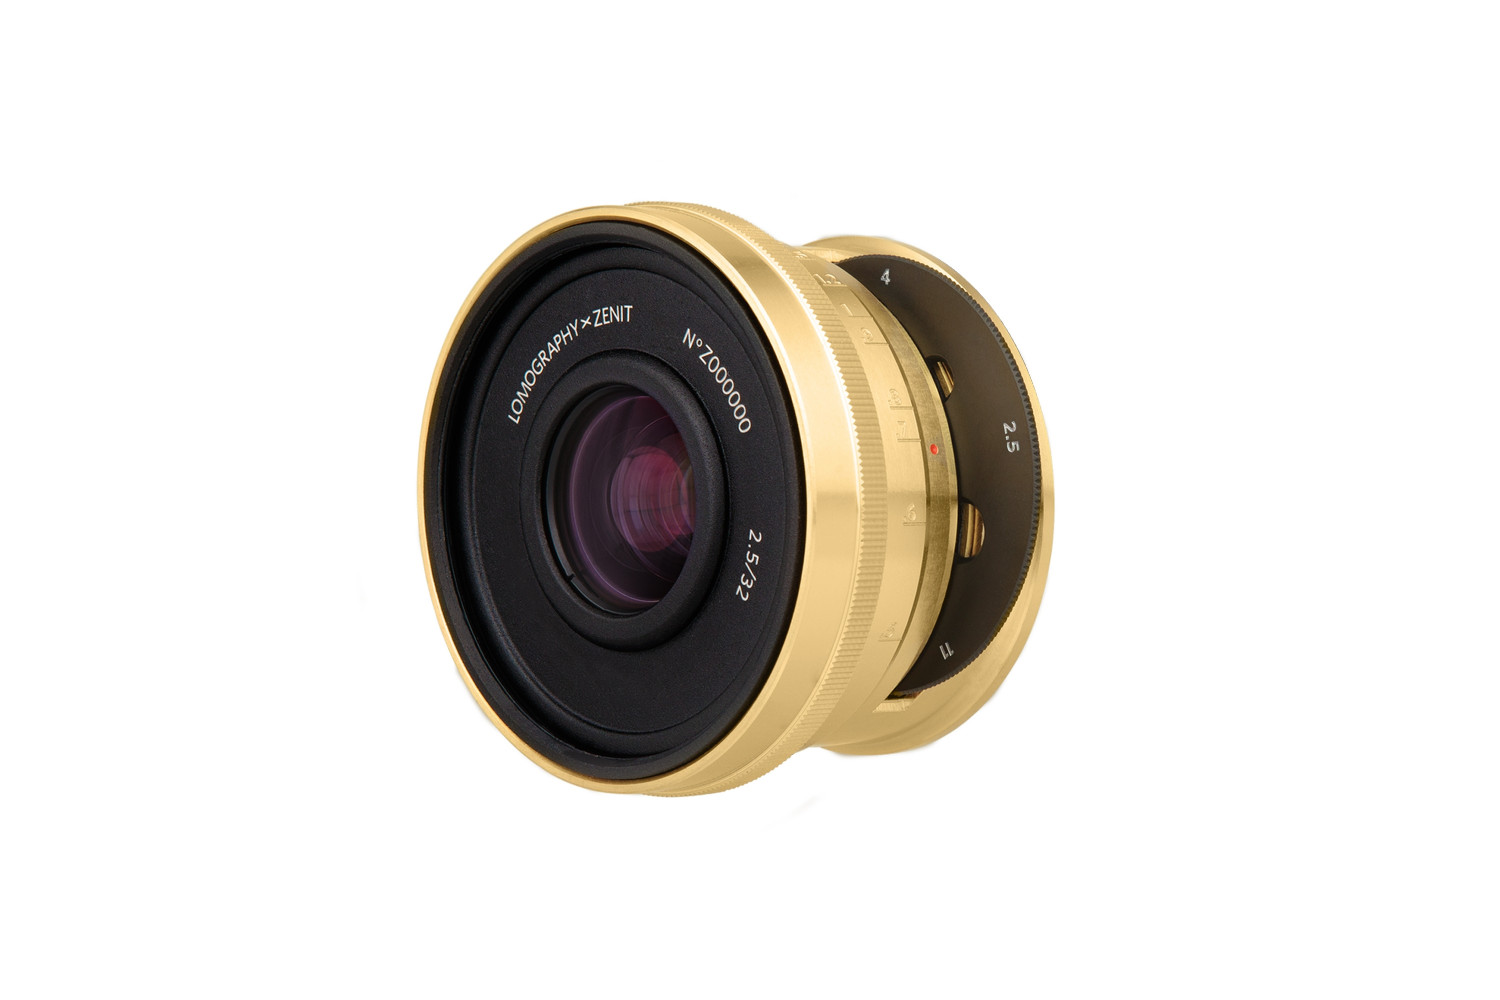 Lomogon 2.5/32 Art Lens Brass - Nikon F Mount - Low Serial Number